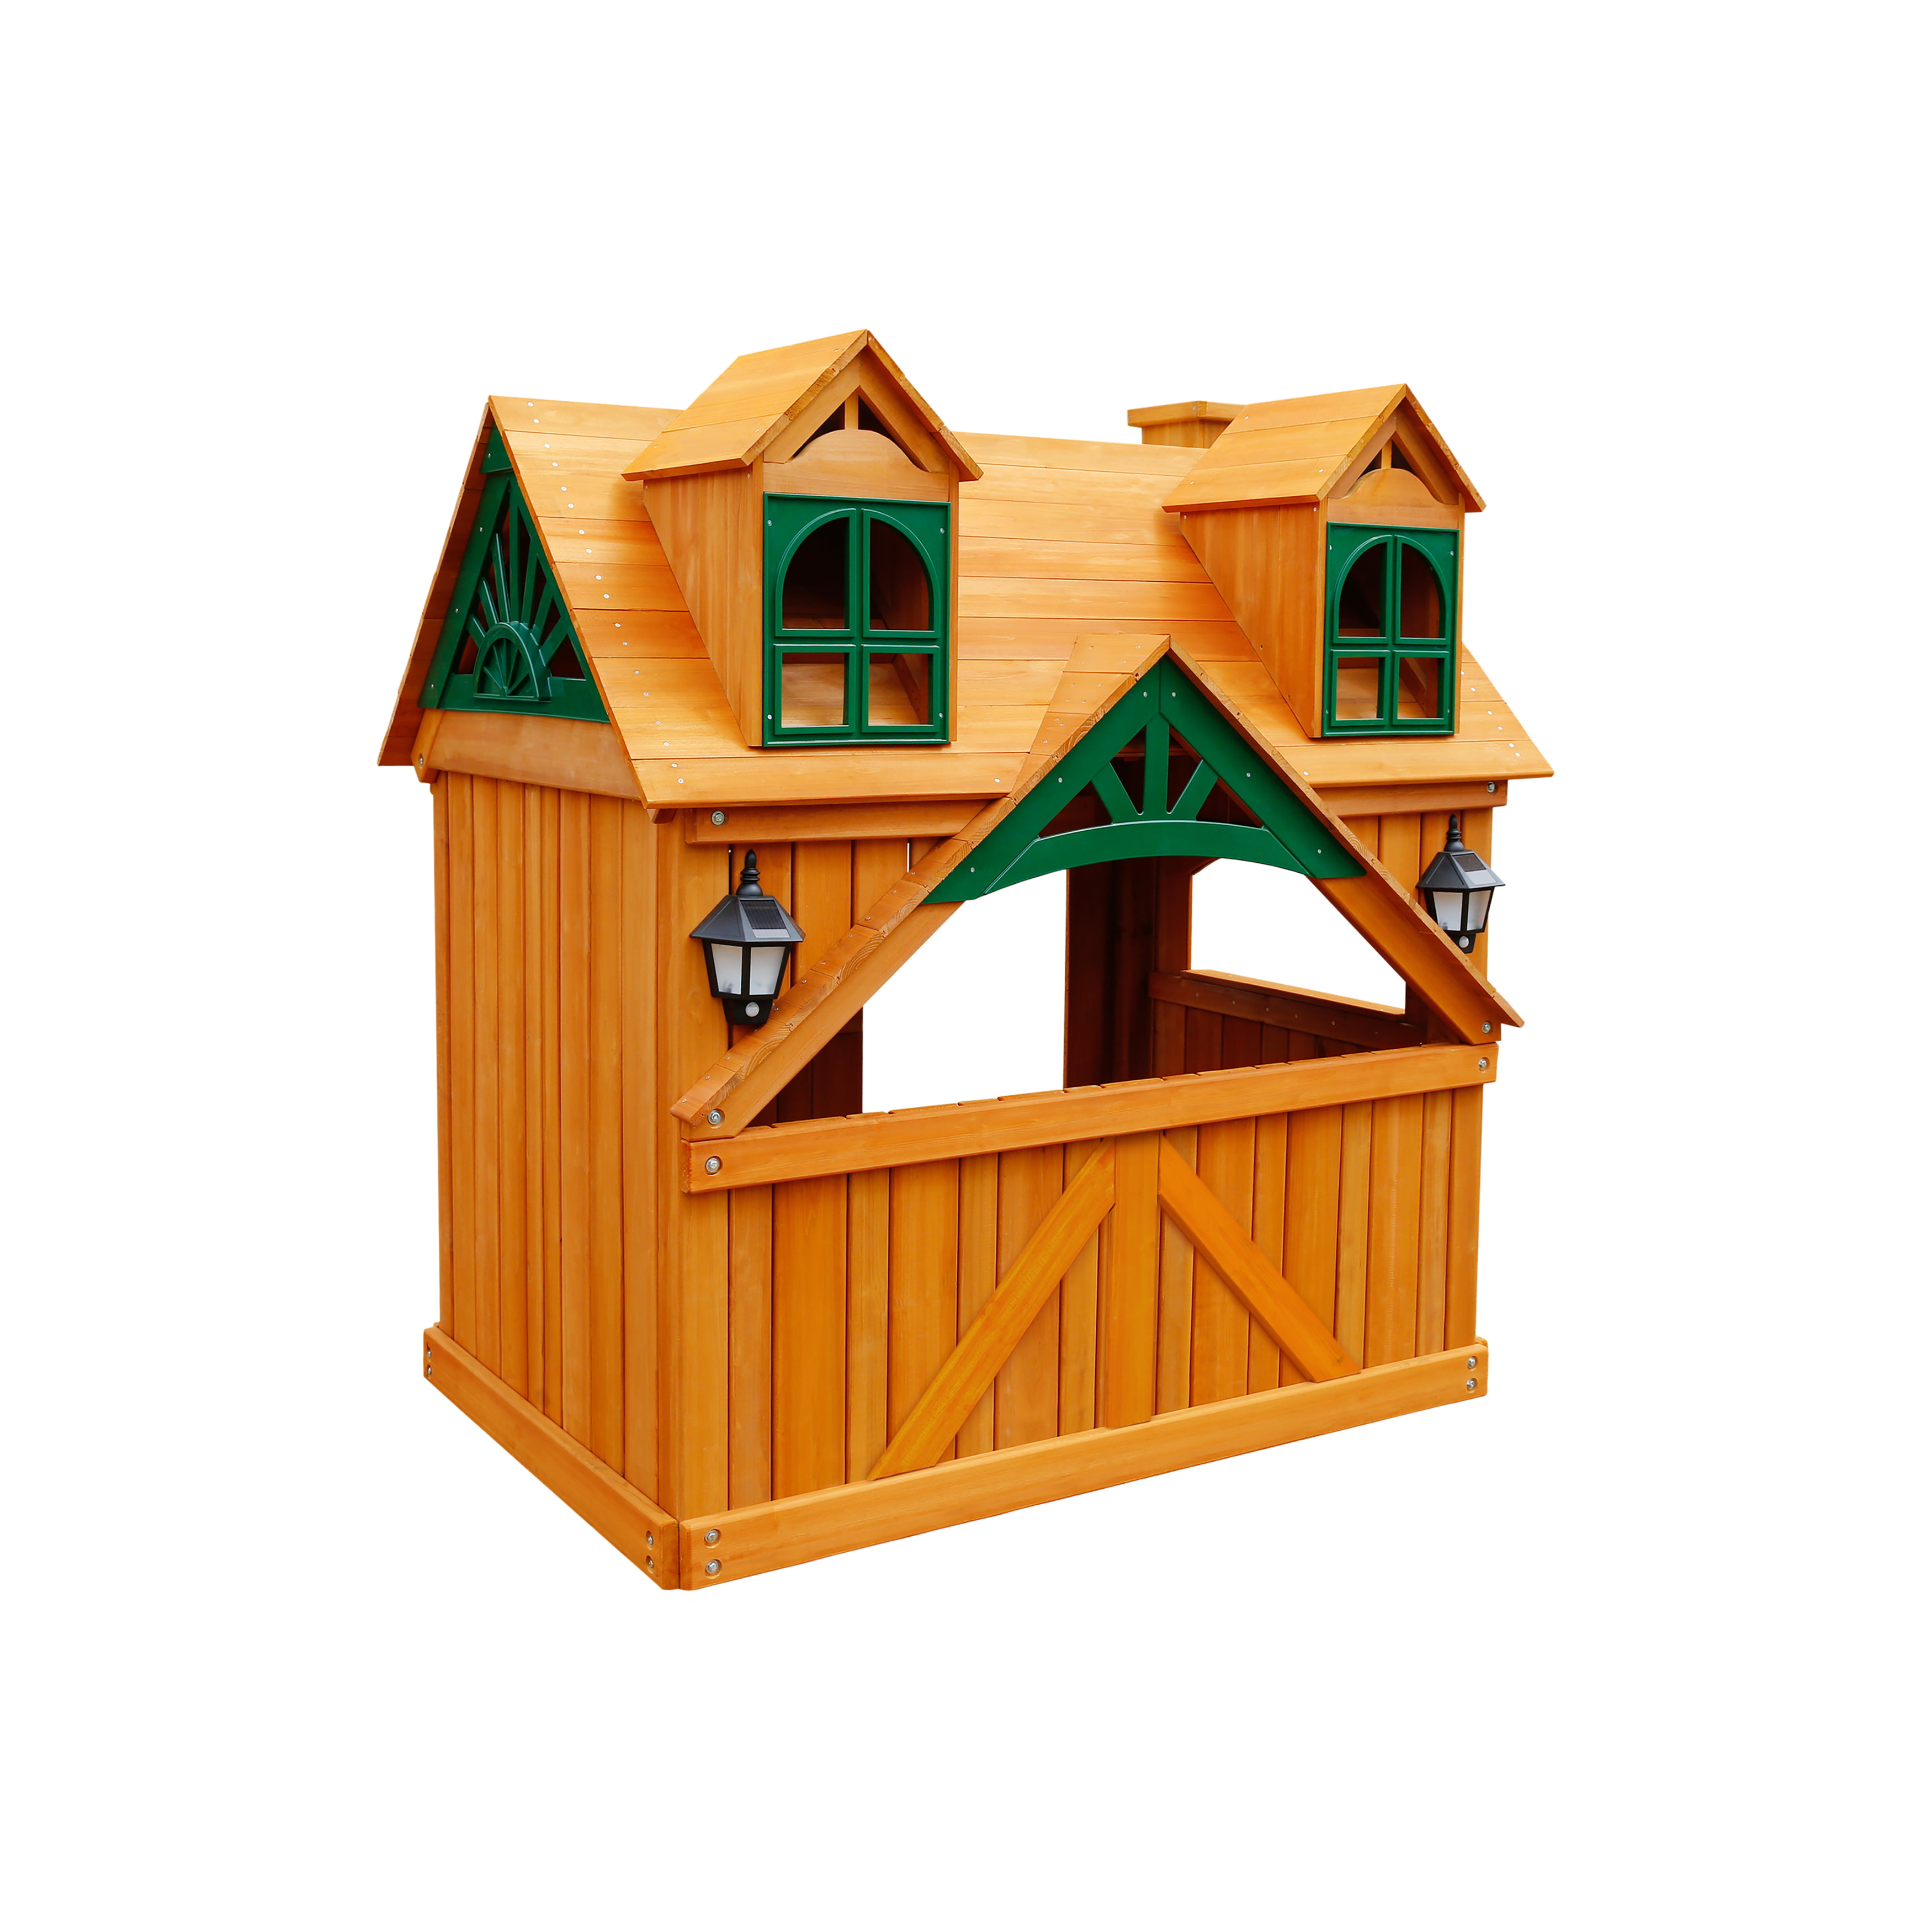 Gorilla Playsets Malibu Wooden Playhouse by Gorilla Playsets